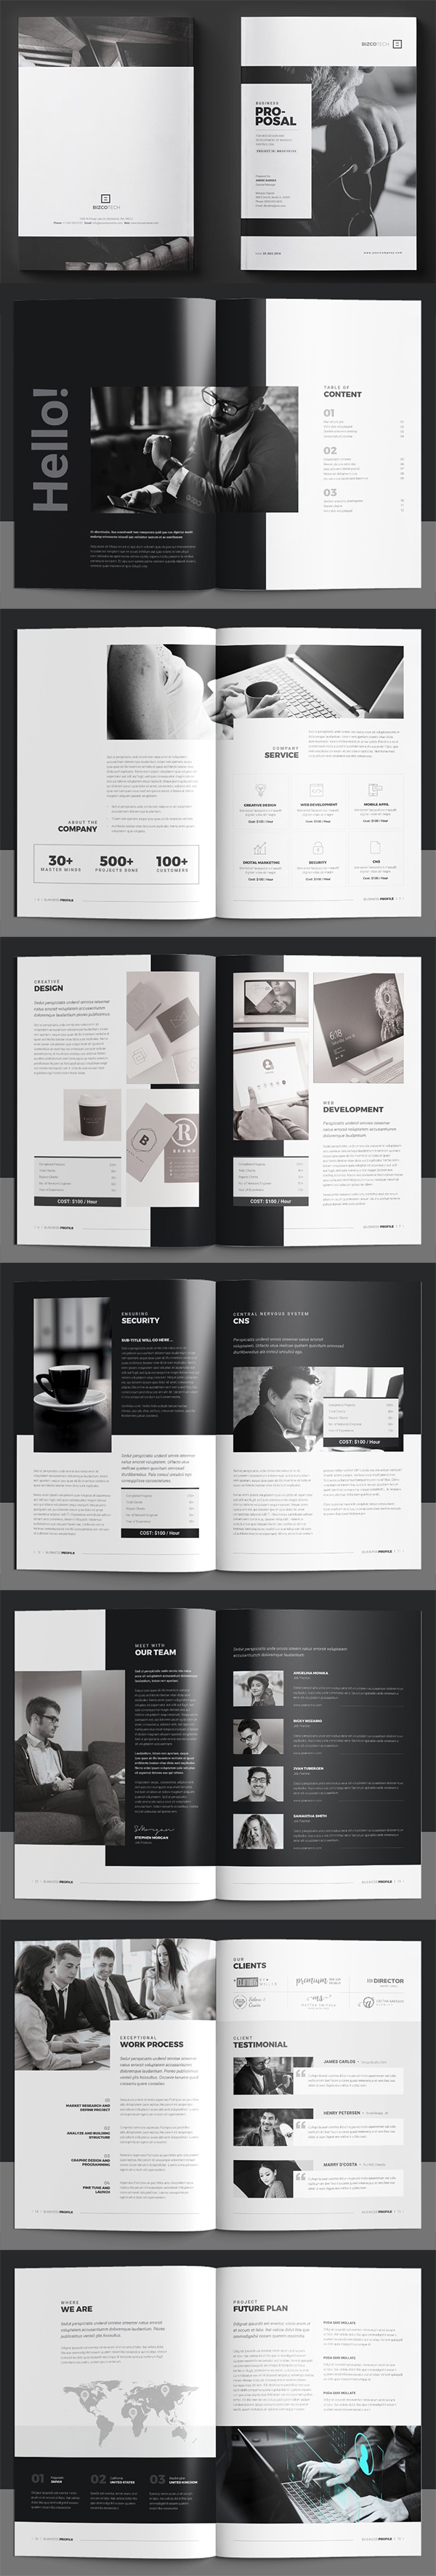 Perfect Company Profile Brochure